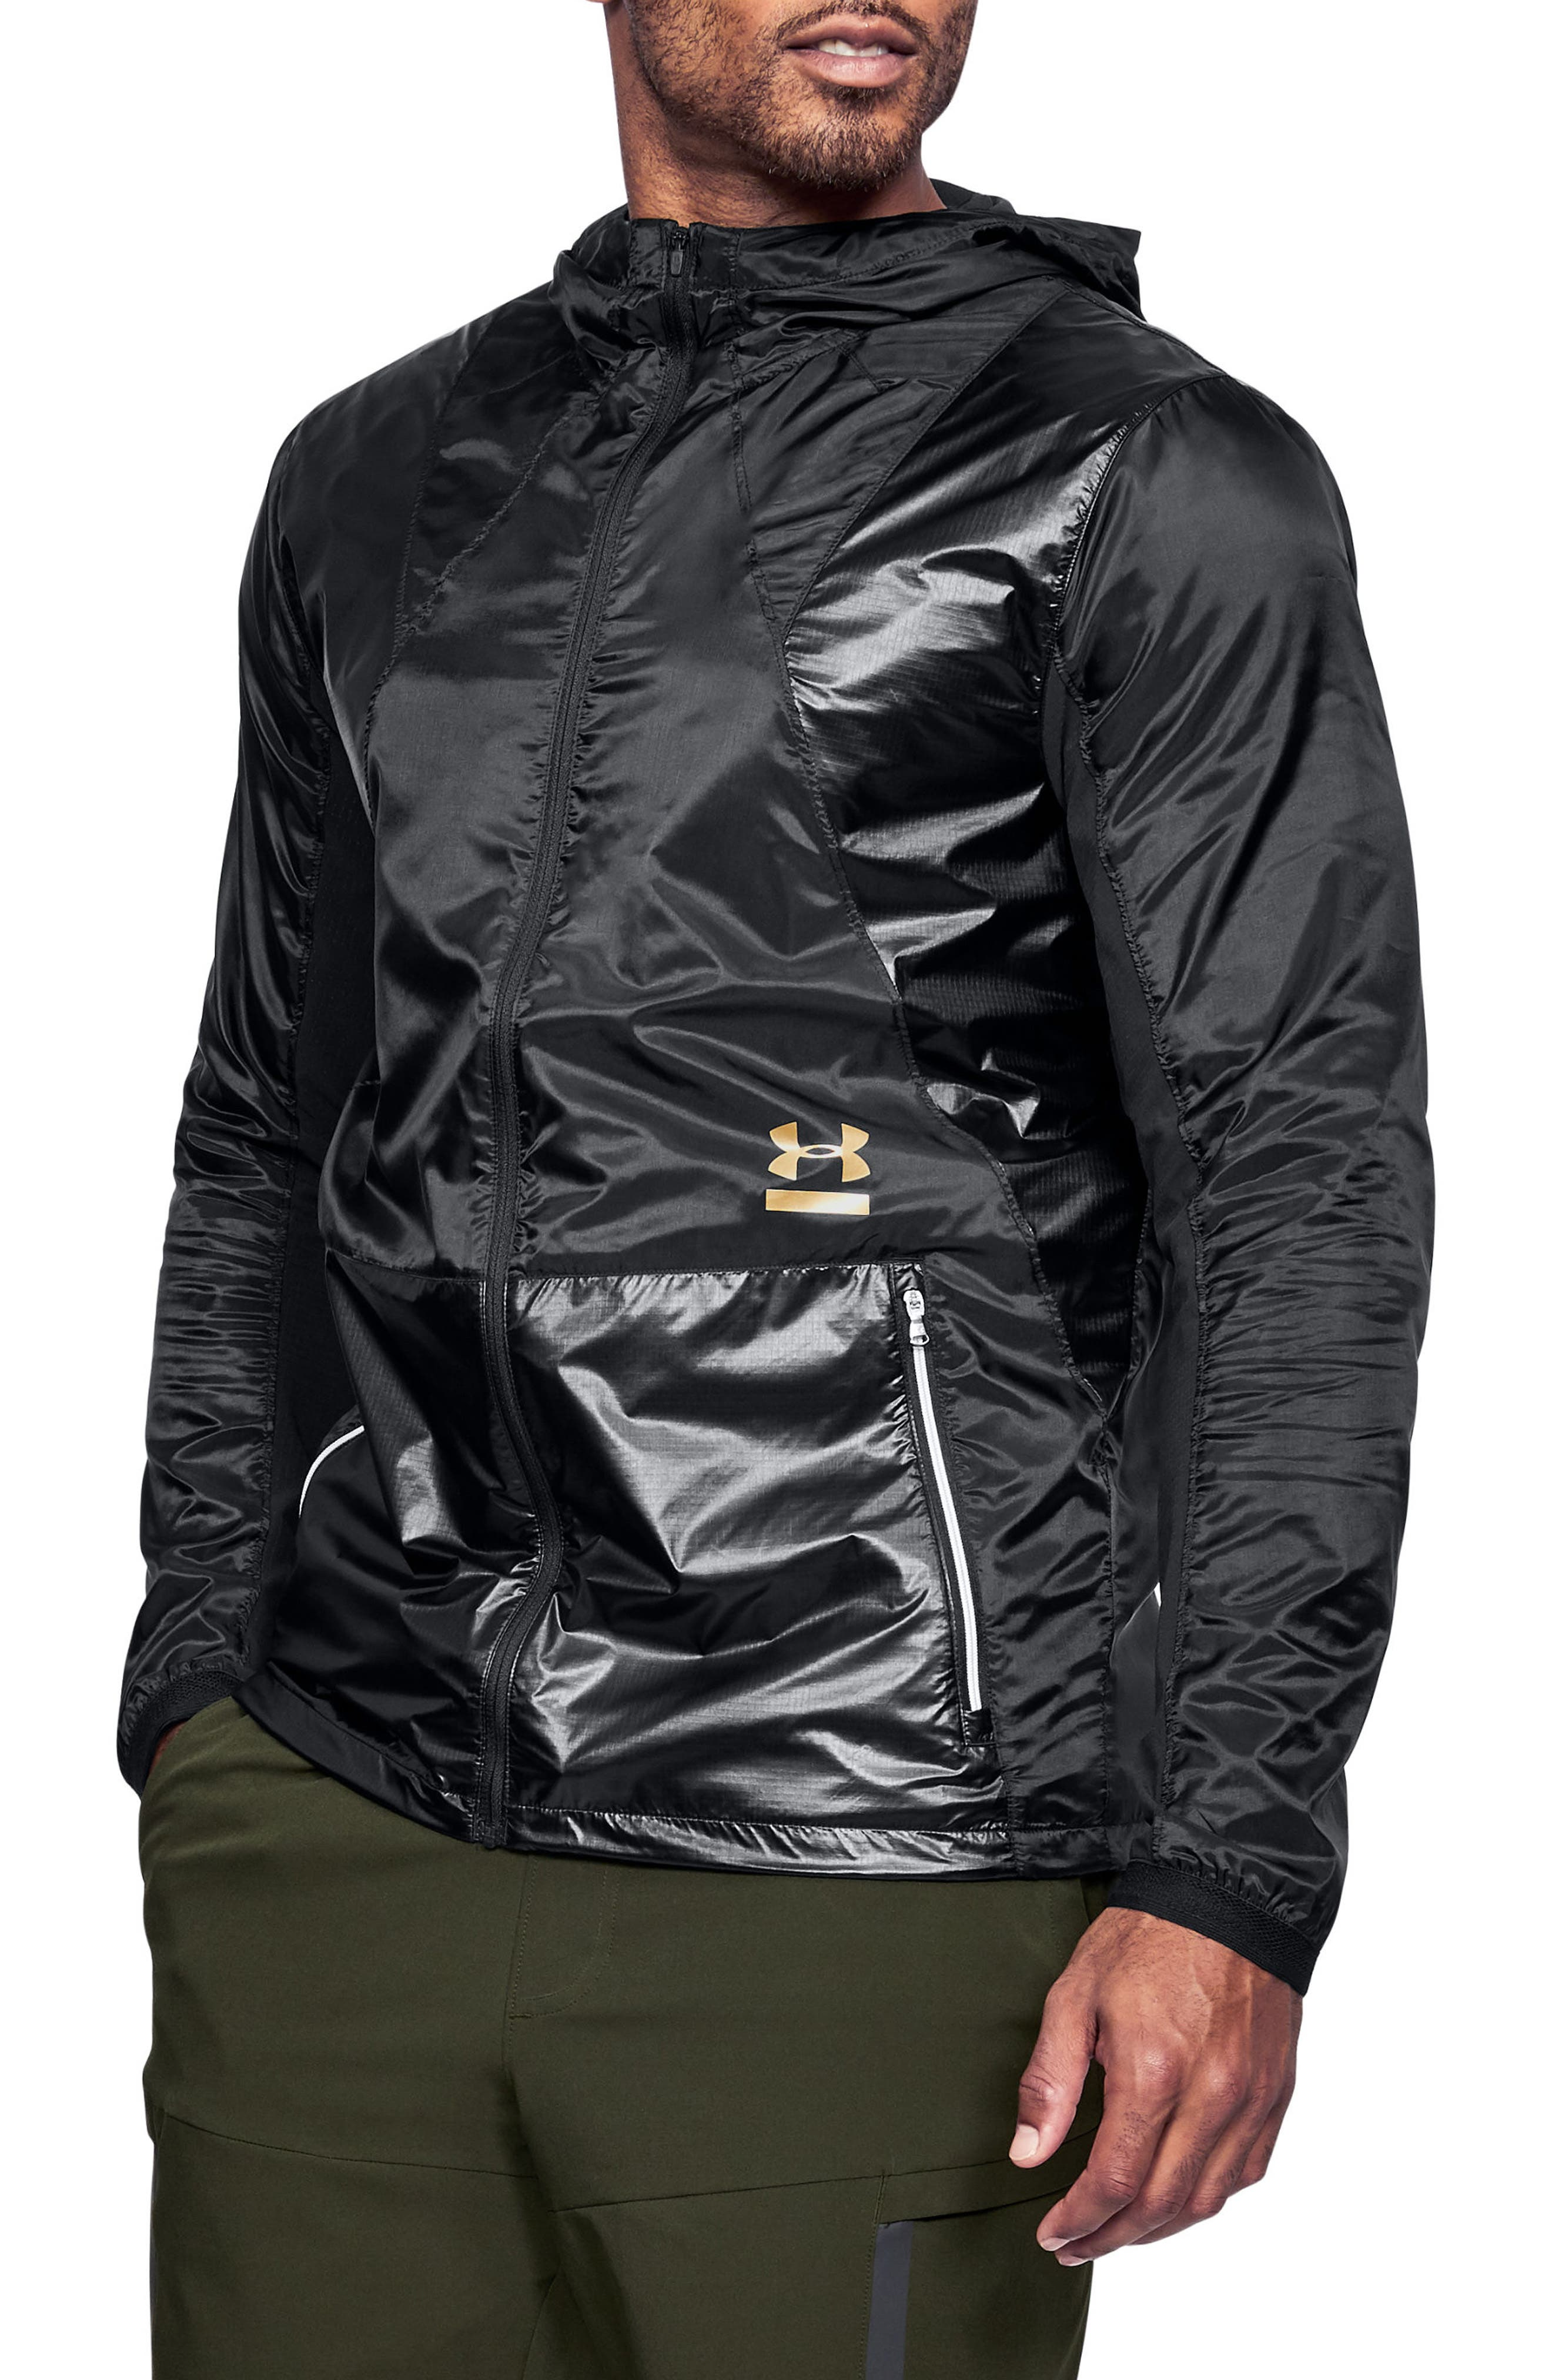 Perpetual Windproof & Water Resistant Hooded Jacket,                             Main thumbnail 1, color,                             BLACK/ METALLIC VICTORY GOLD